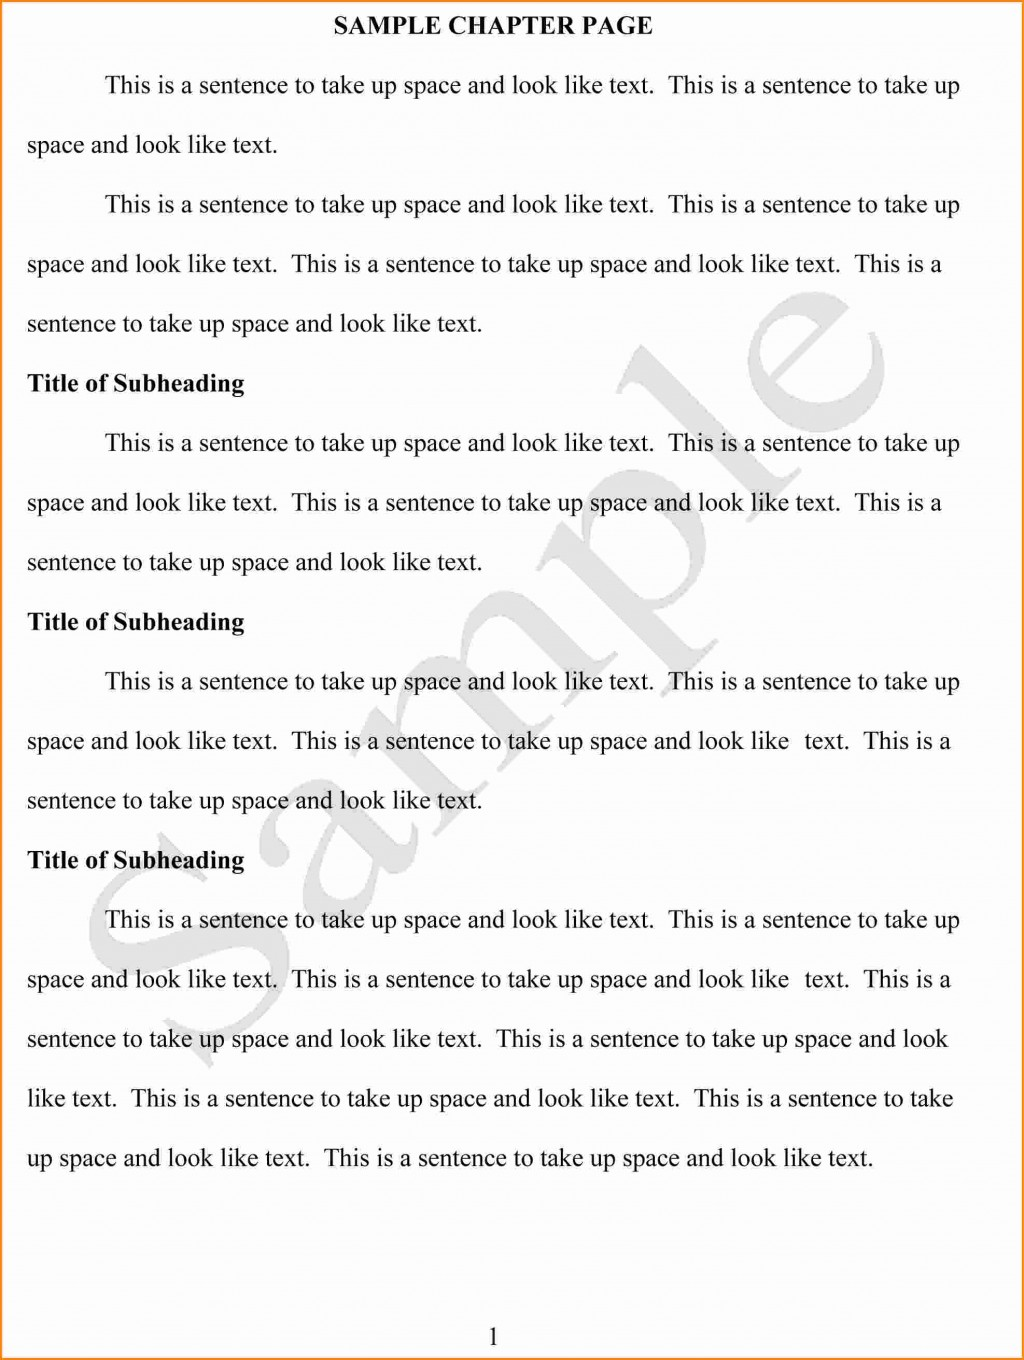 006 Thesis Essay Bullying About In Schools Format Of Persuasive On High School Application Samples Example Amazing Afrikaans Pdf Large